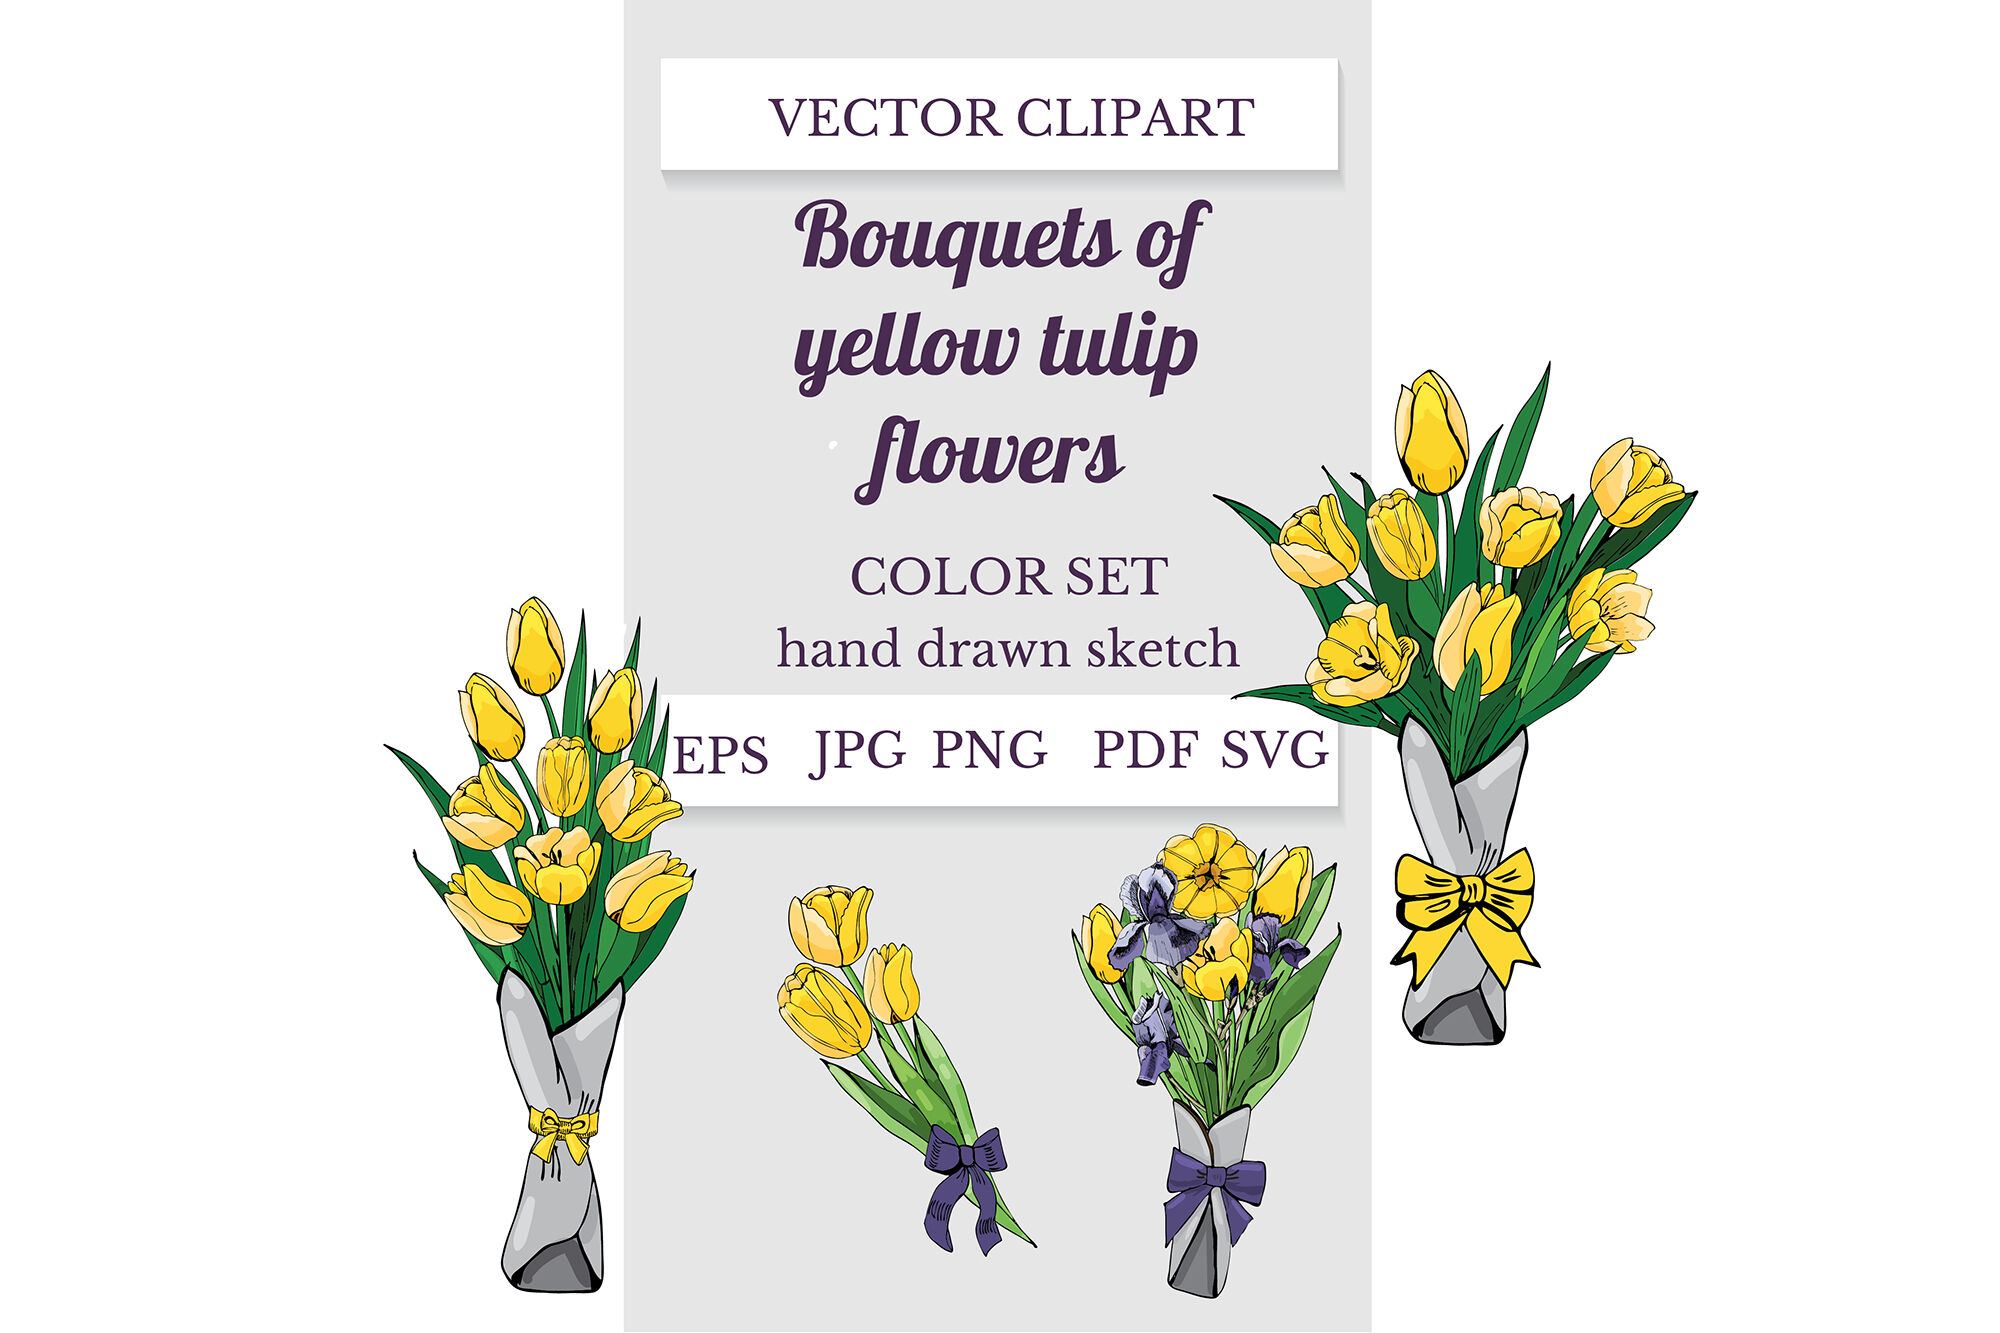 Hand Drawn Sketch Of Yellow Tulip And Purple Iris Flowers Vector